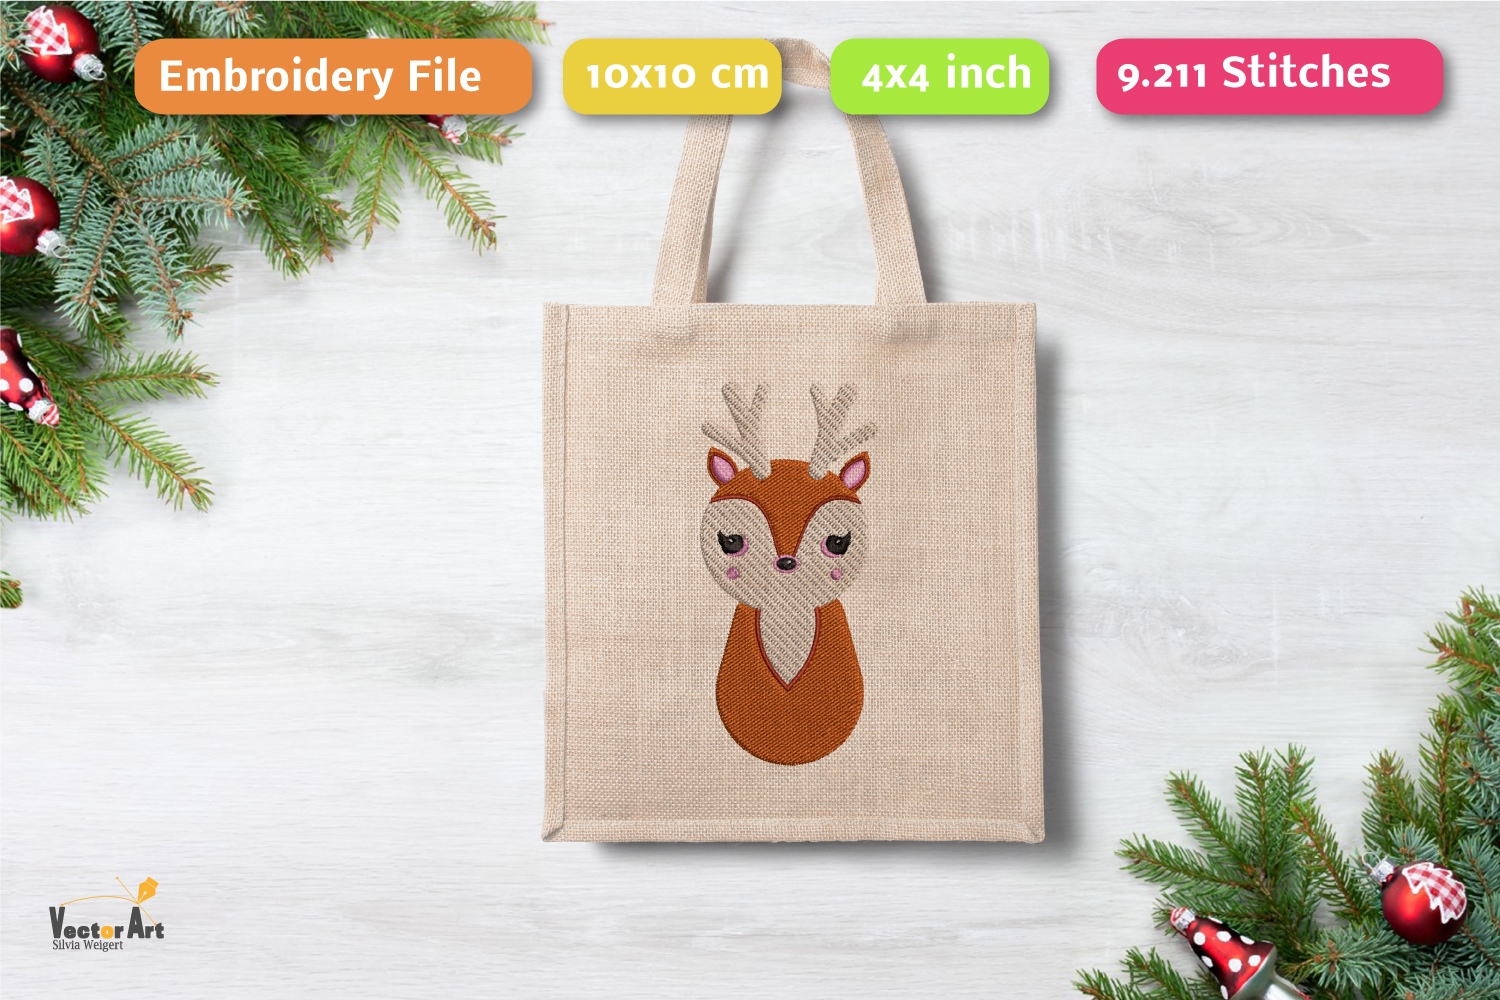 Deer - Embroidery File - 4x4 inch example image 1